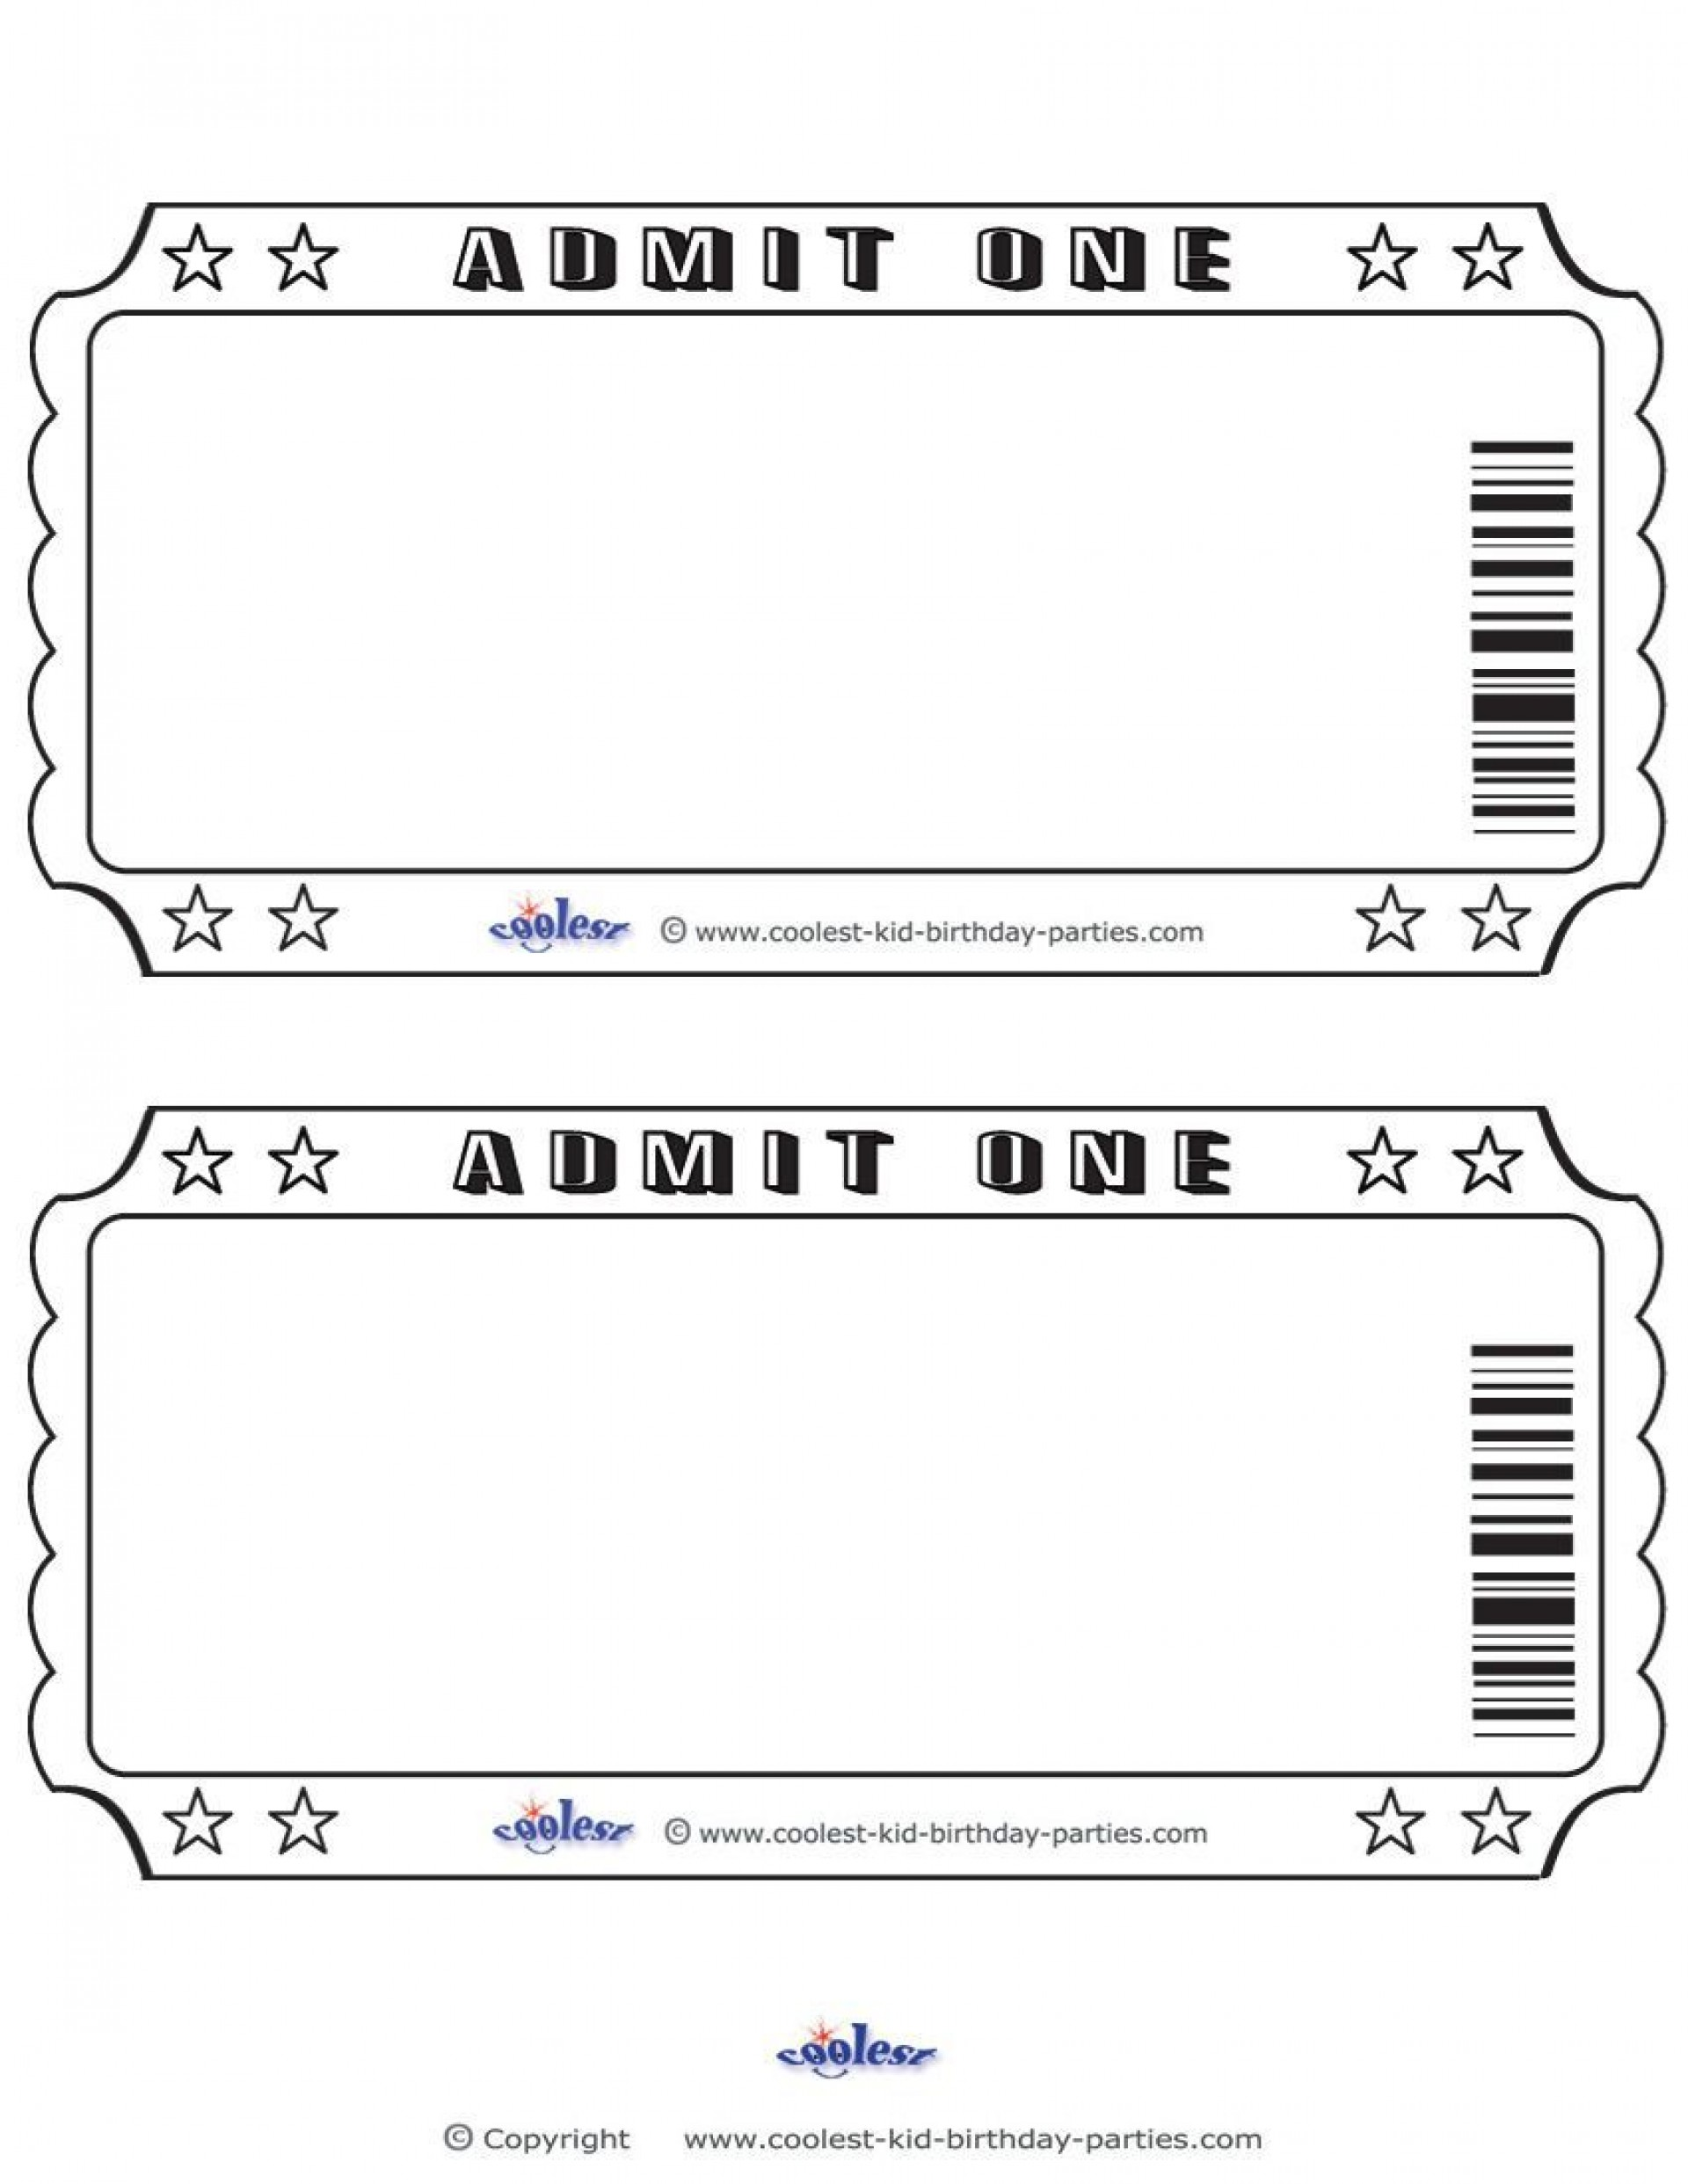 002 Remarkable Print Ticket Free Template Concept  Your Own1920